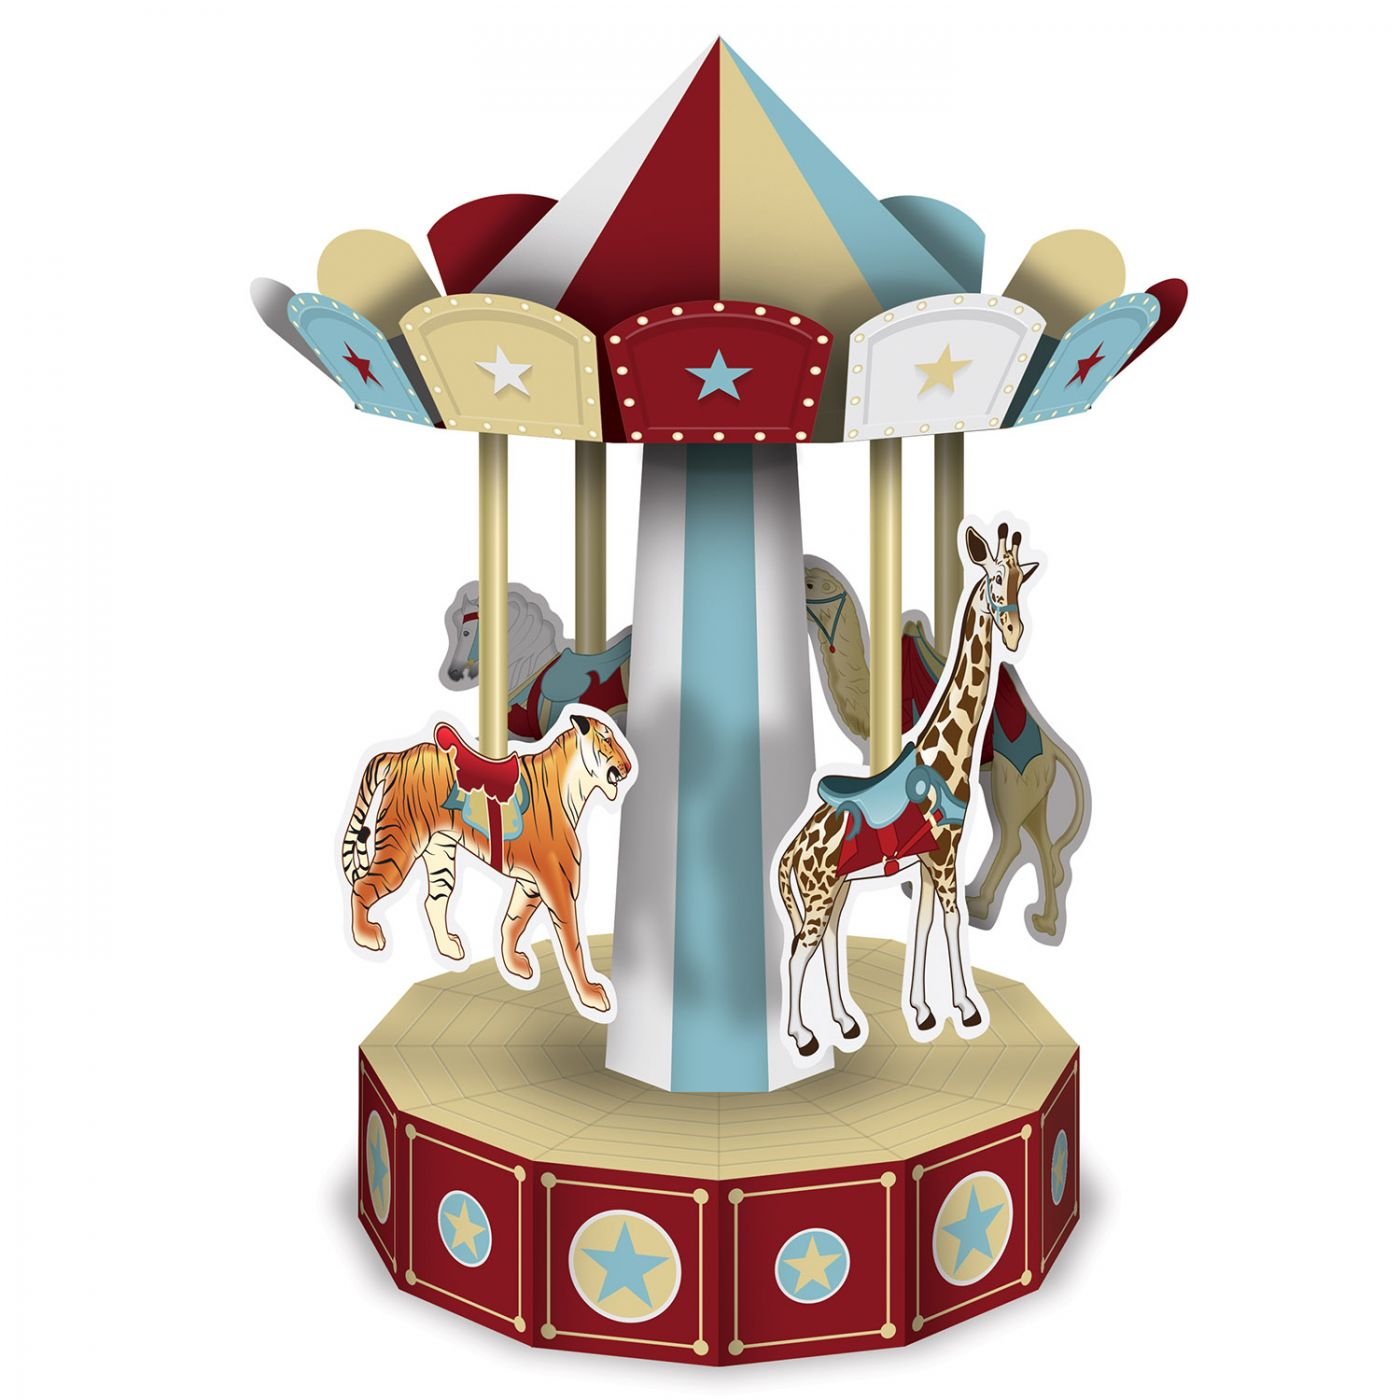 Image of 3-D Vintage Circus Carousel Centerpiece